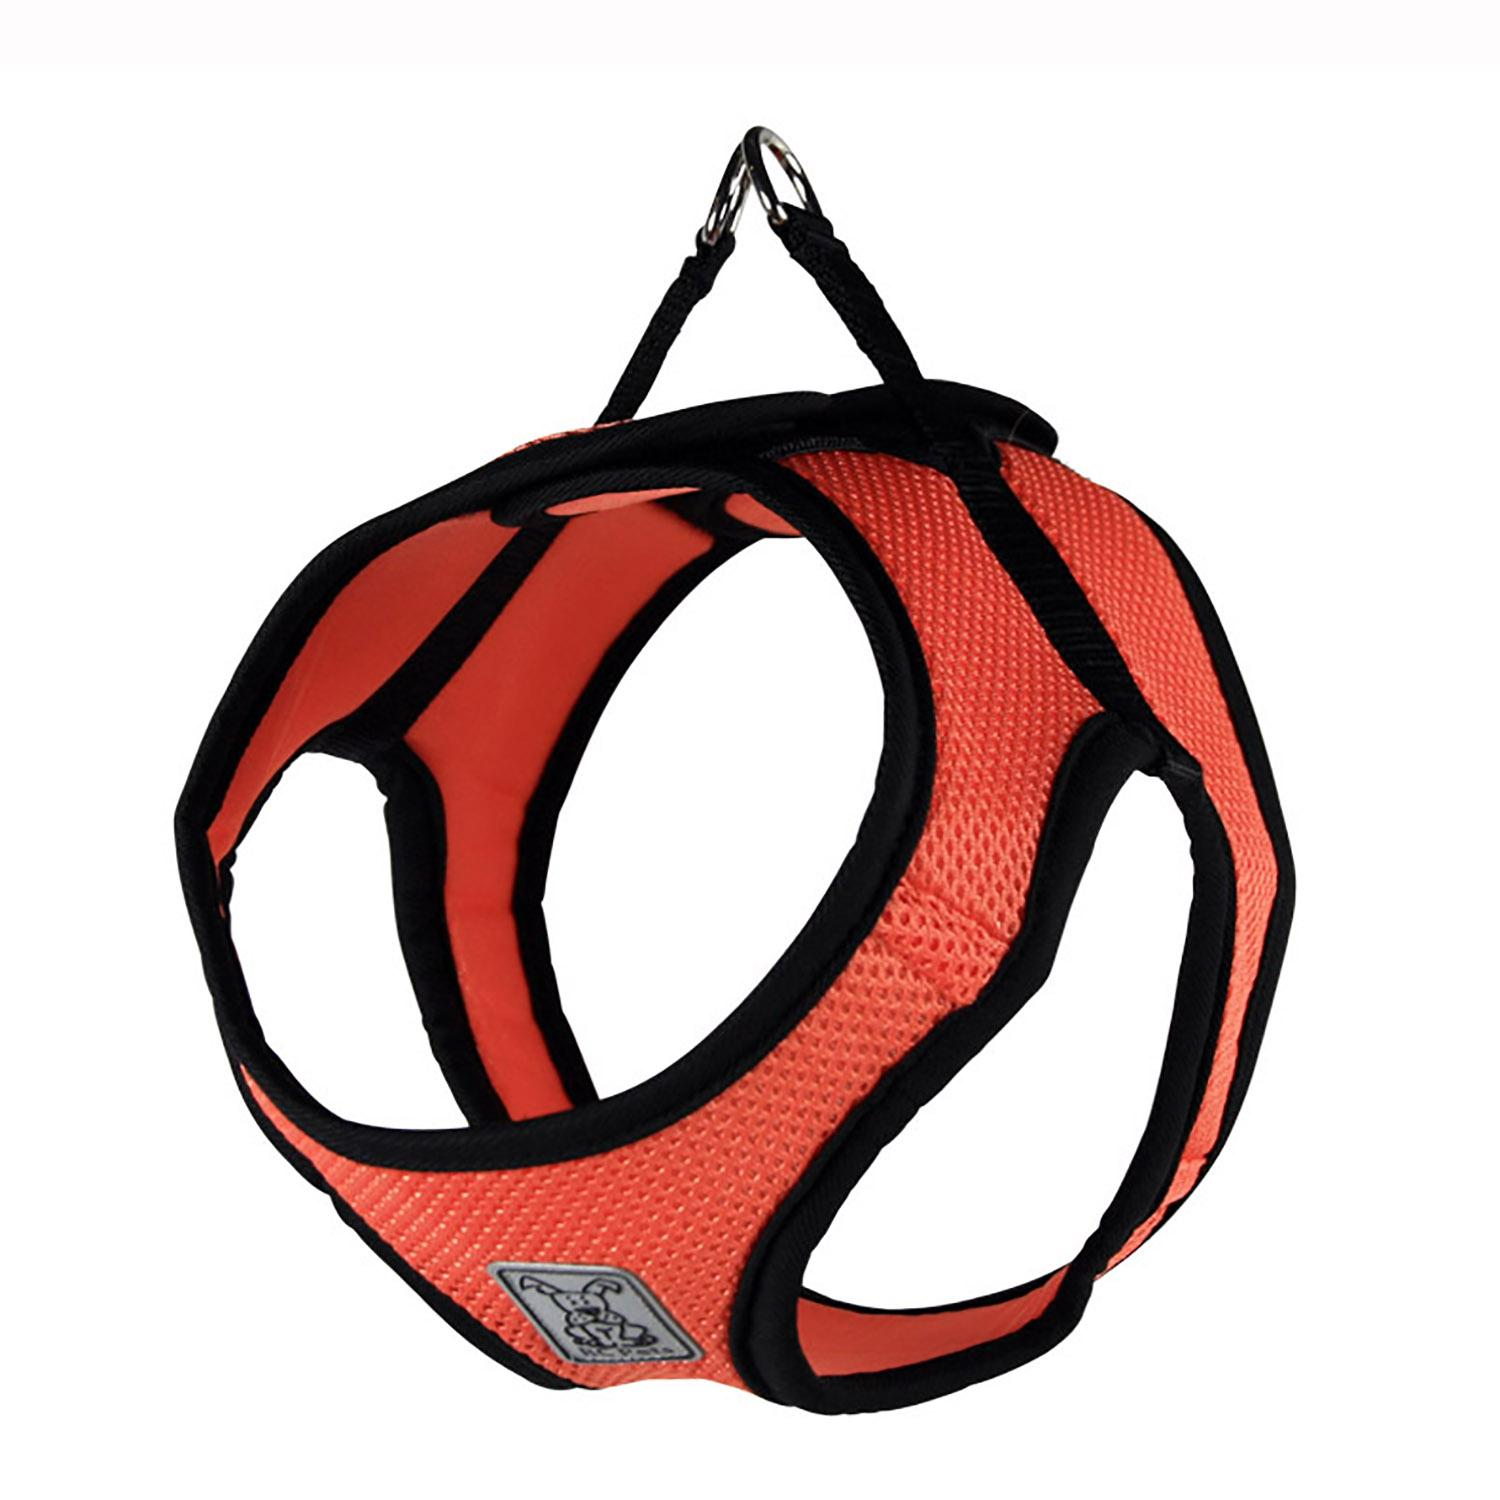 Step-in Cirque Dog Harness - Coral